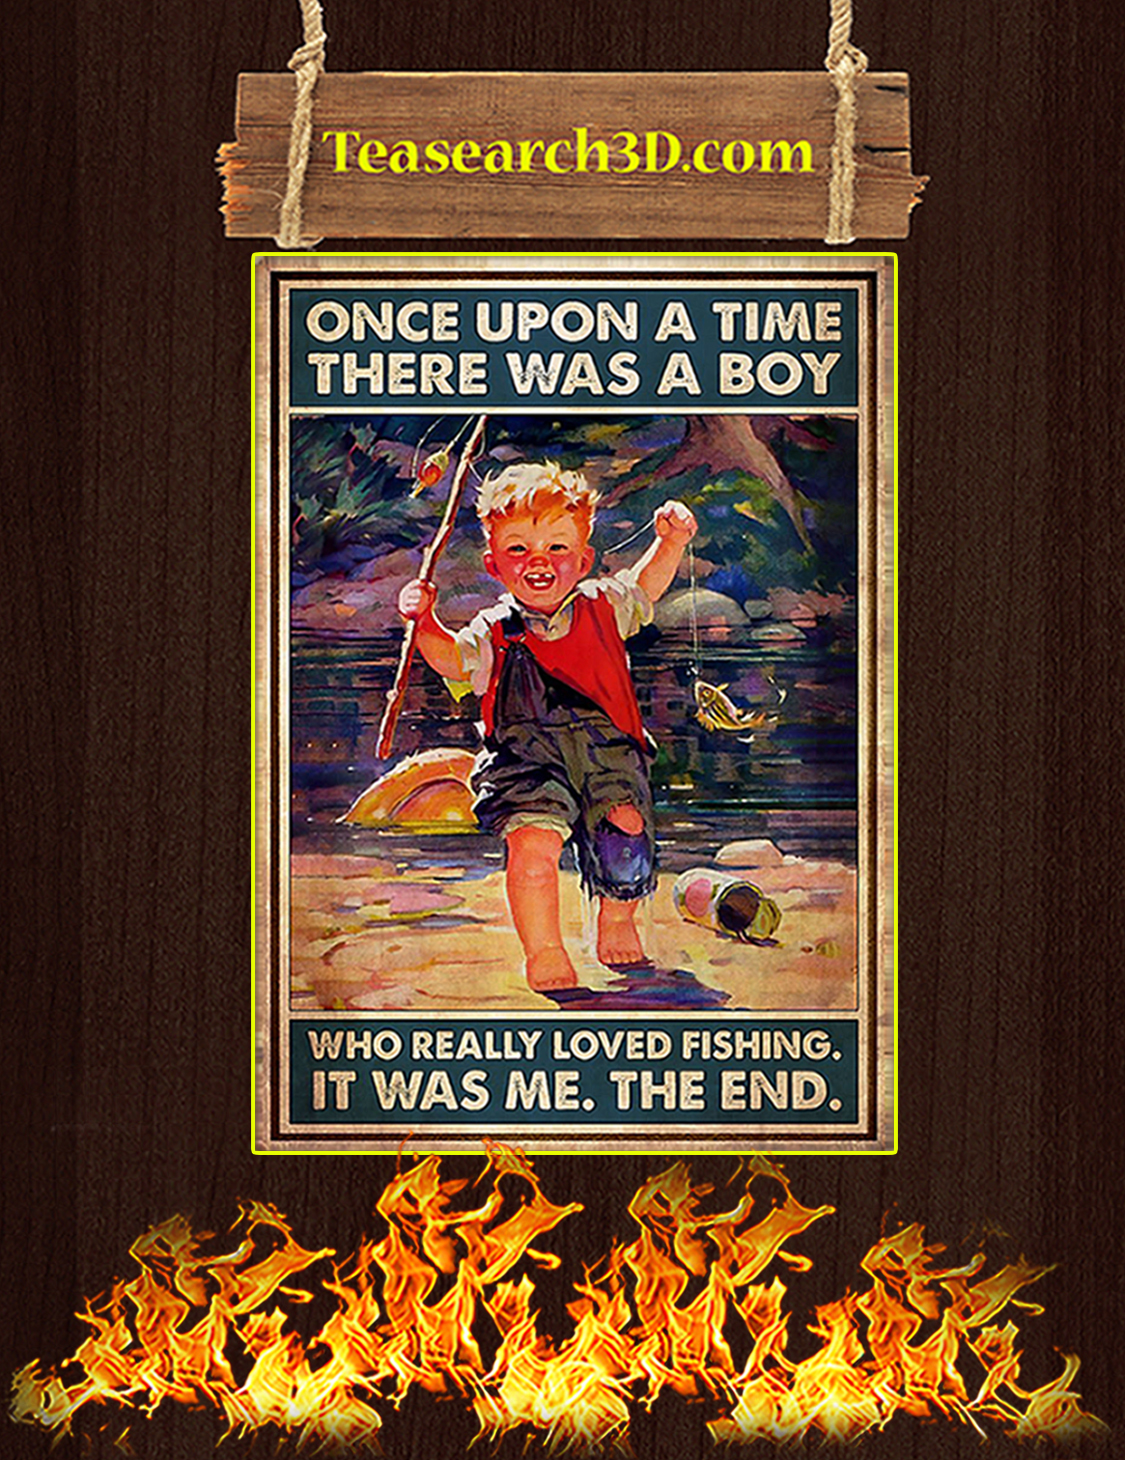 Once upon a time there was a boy who really loved fishing poster A3